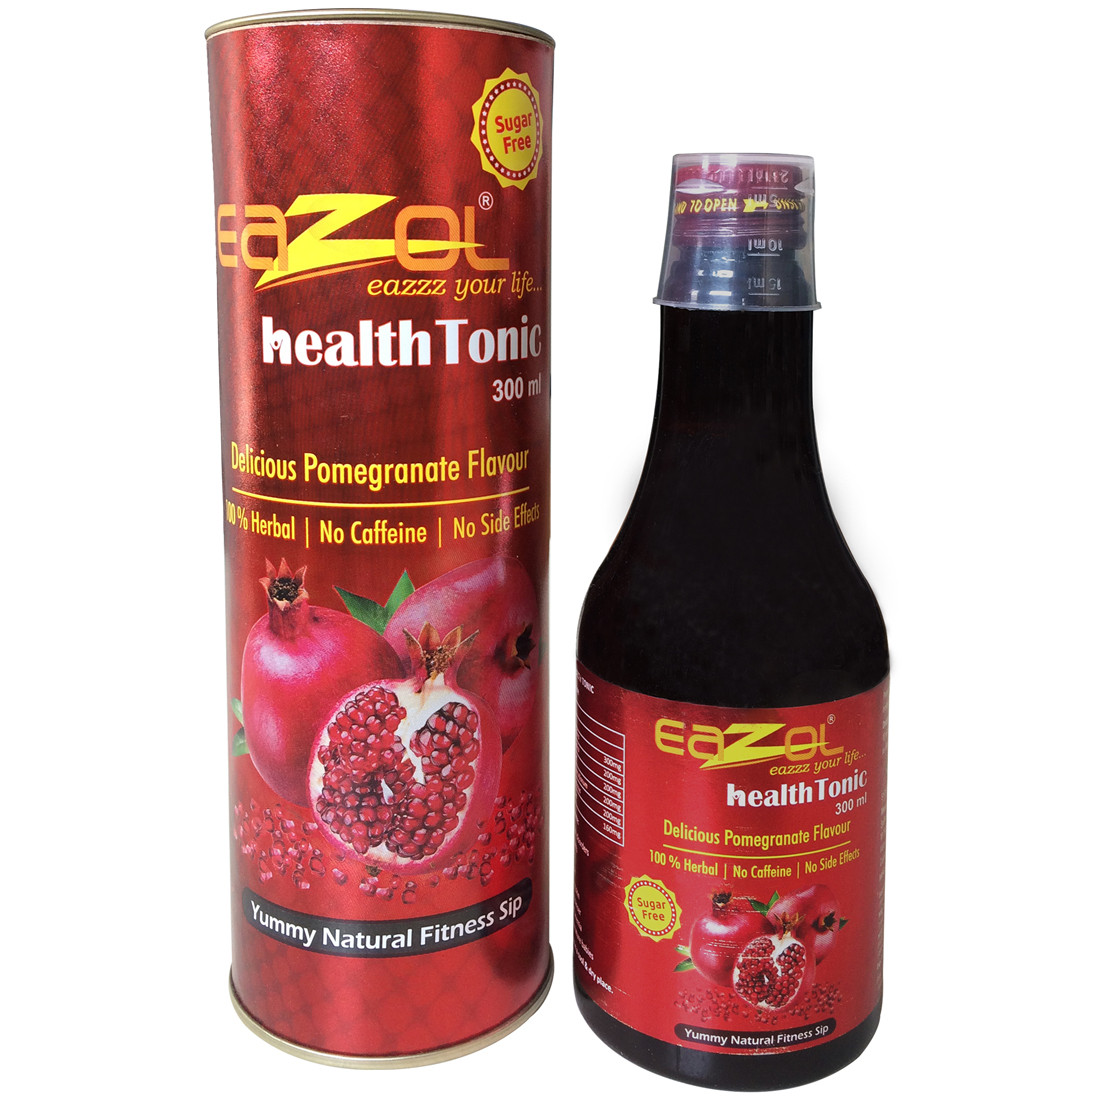 Eazol Ayurvedic Health Tonic Pomegranate Flavour 300ml